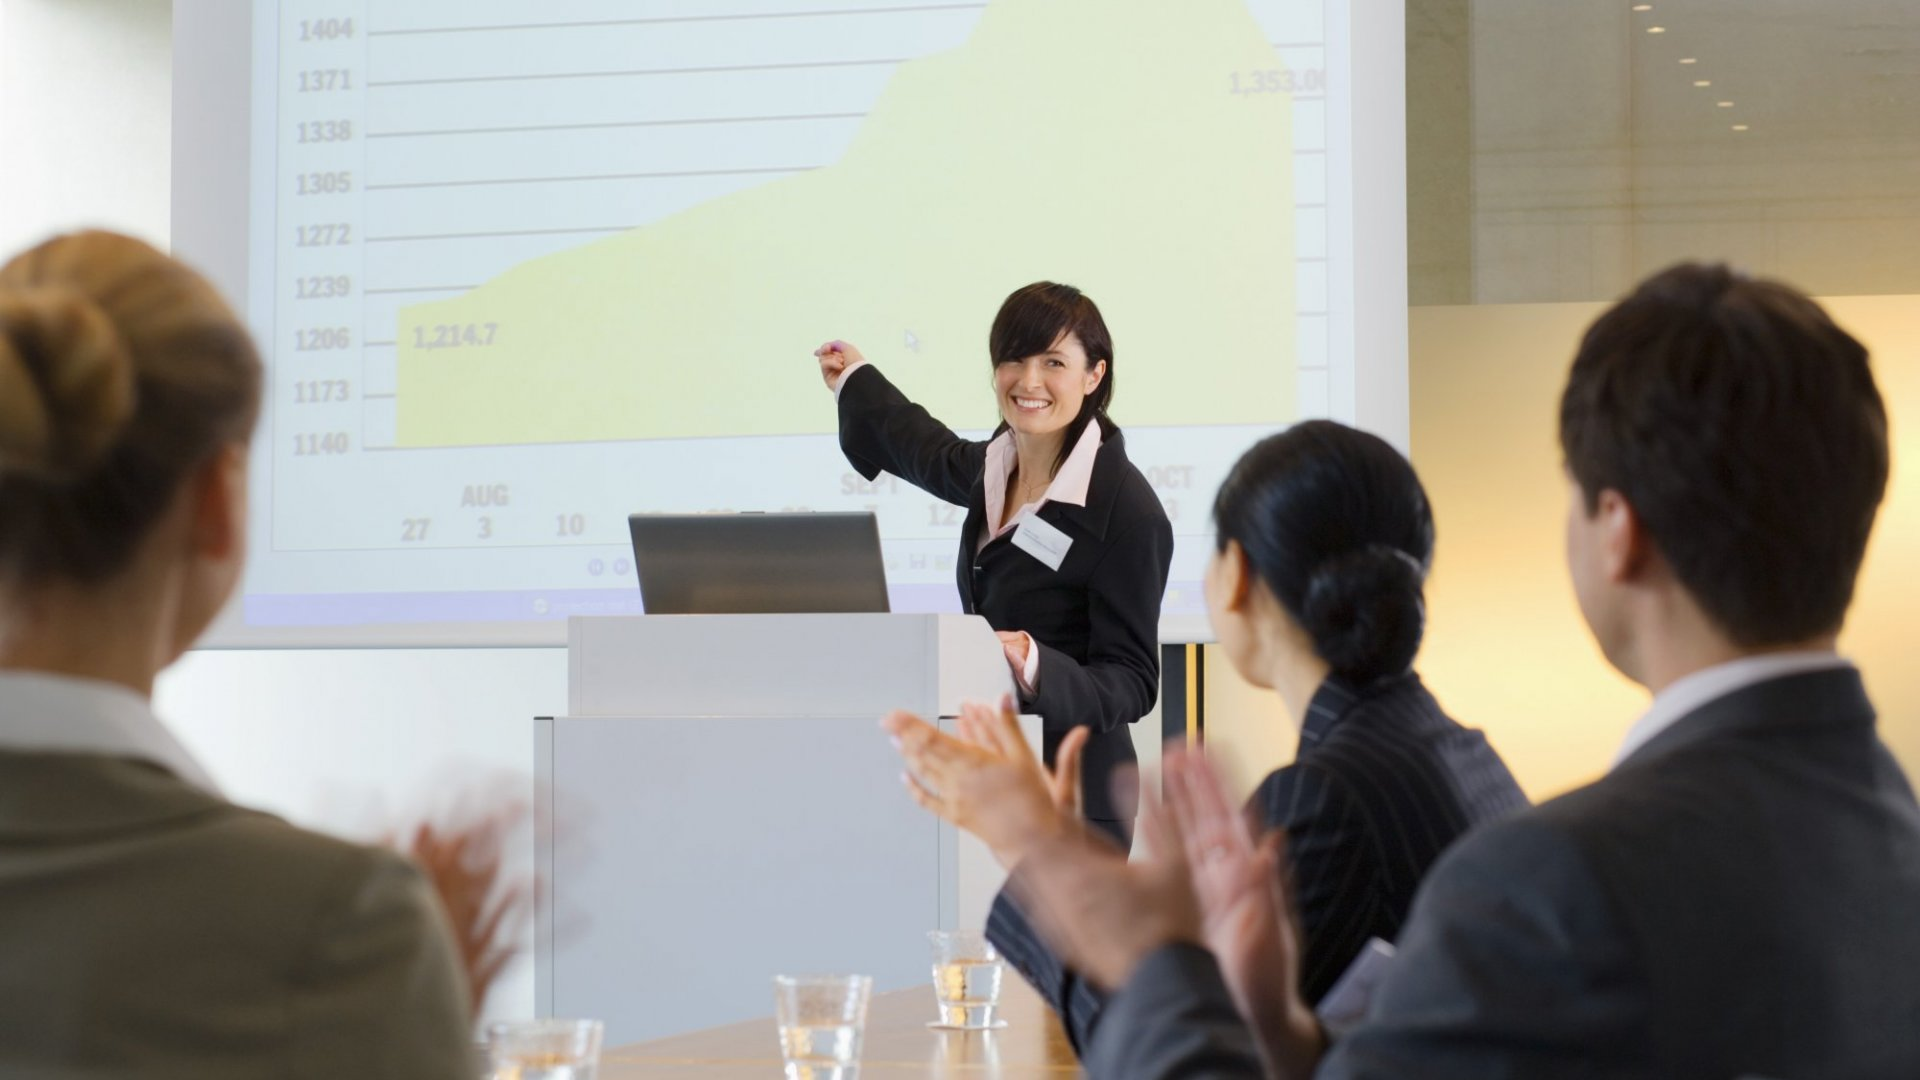 Why Over Using PowerPoint Is Hurting Your Ability to Influence People